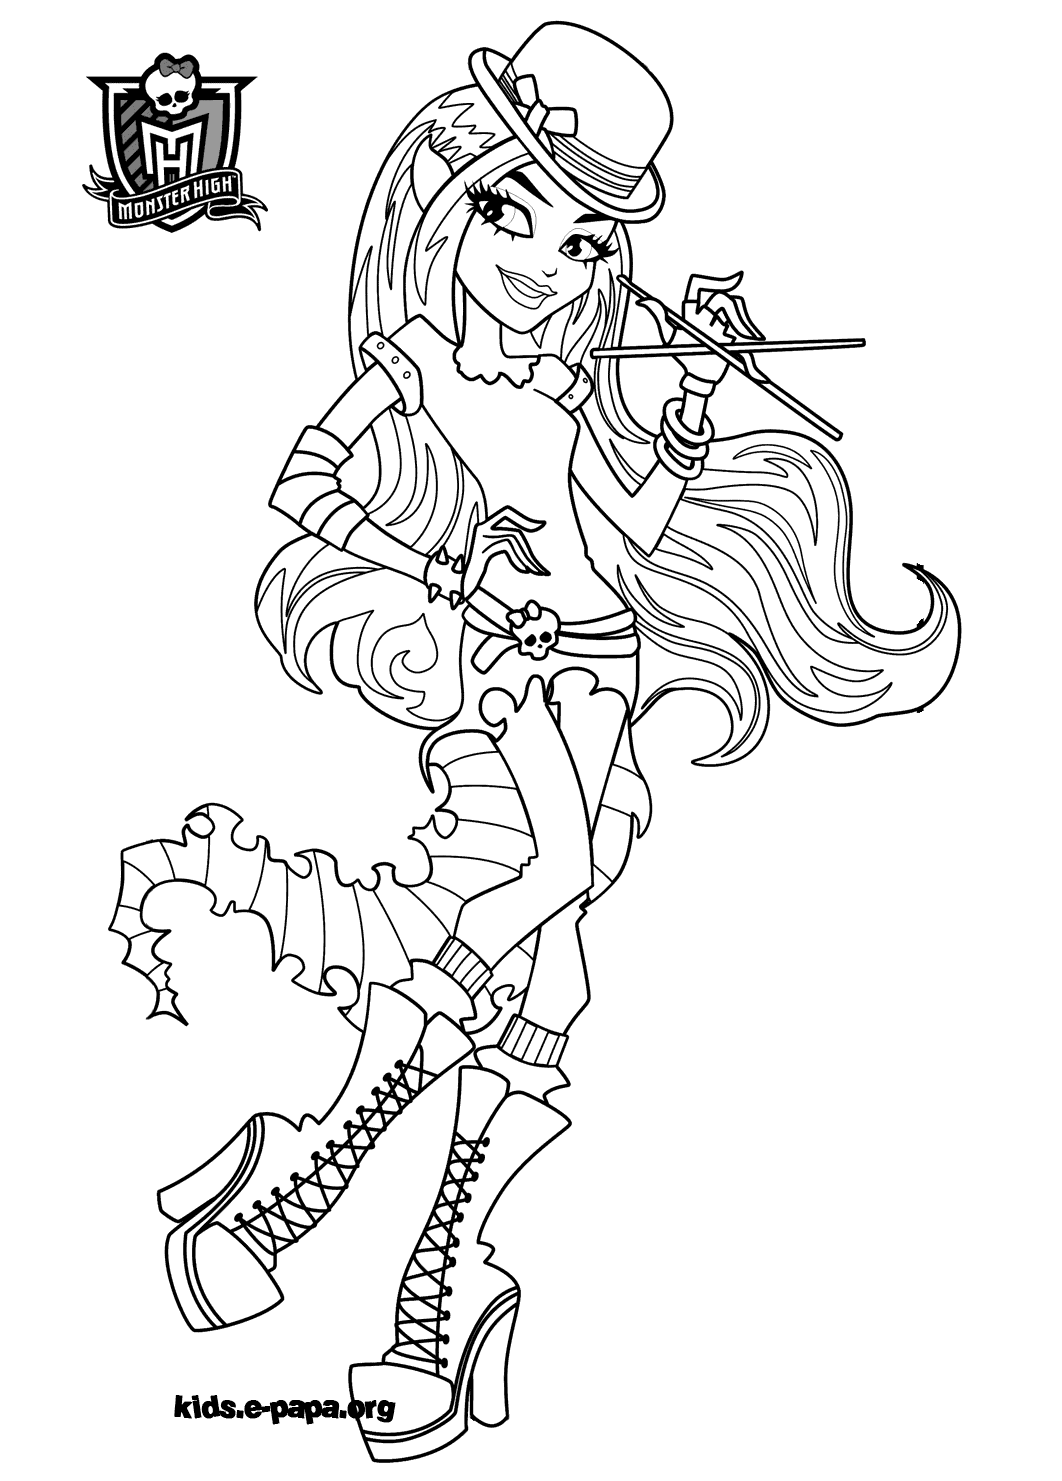 Monster High Clawdeen Ausmalbilder : Monster High Coloriage Baby This Printable Colouring Sheet Show A